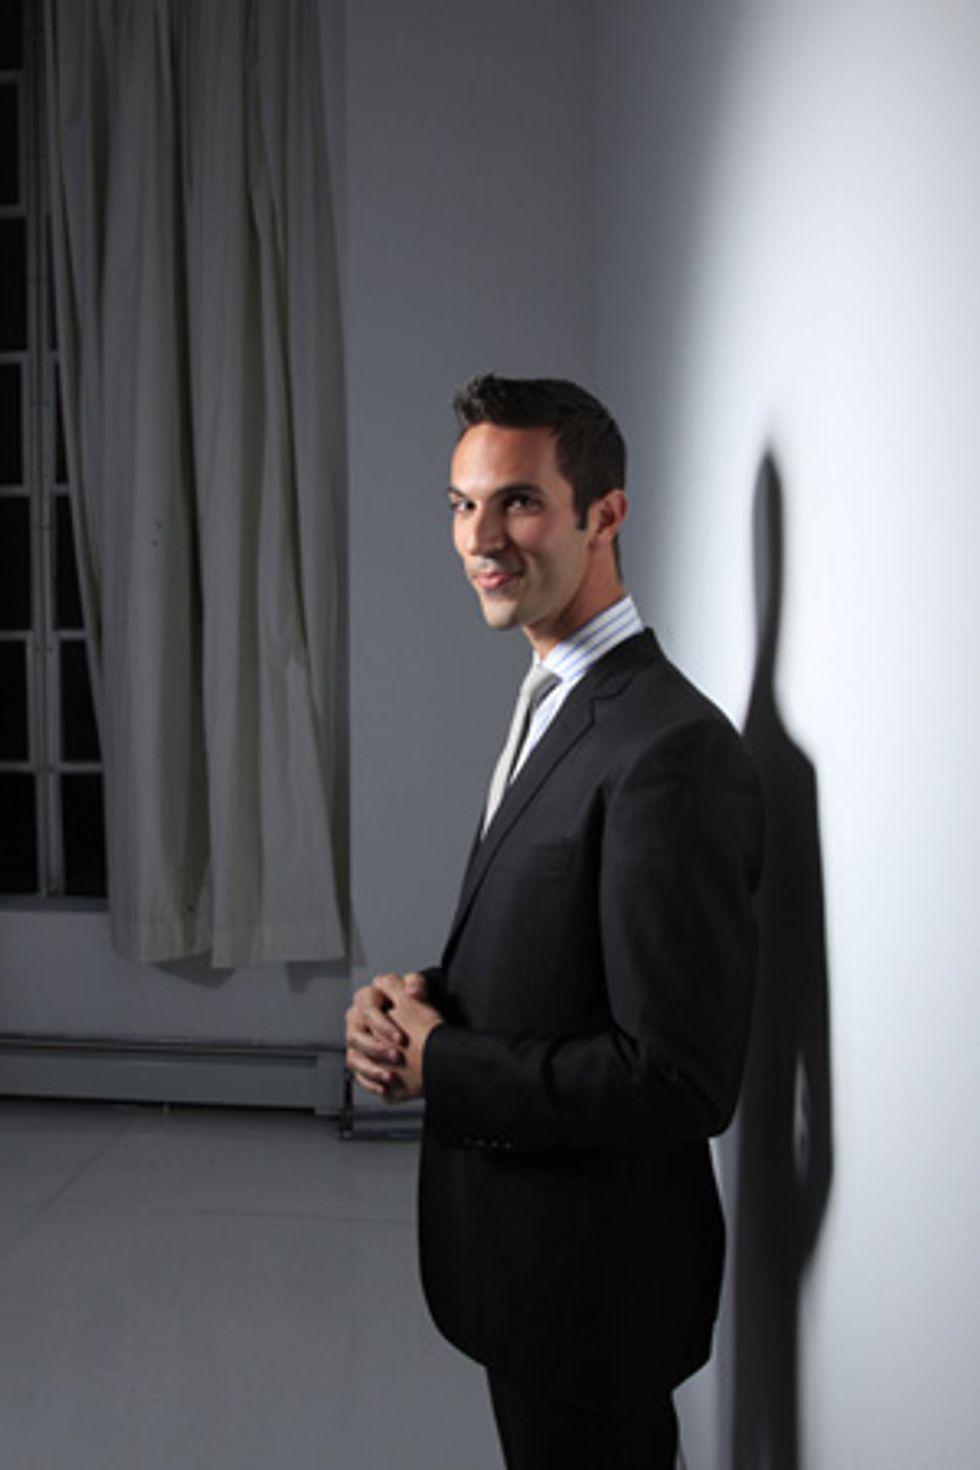 Extra Extra! More With NPR's Ari Shapiro from Our Beautiful People Issue